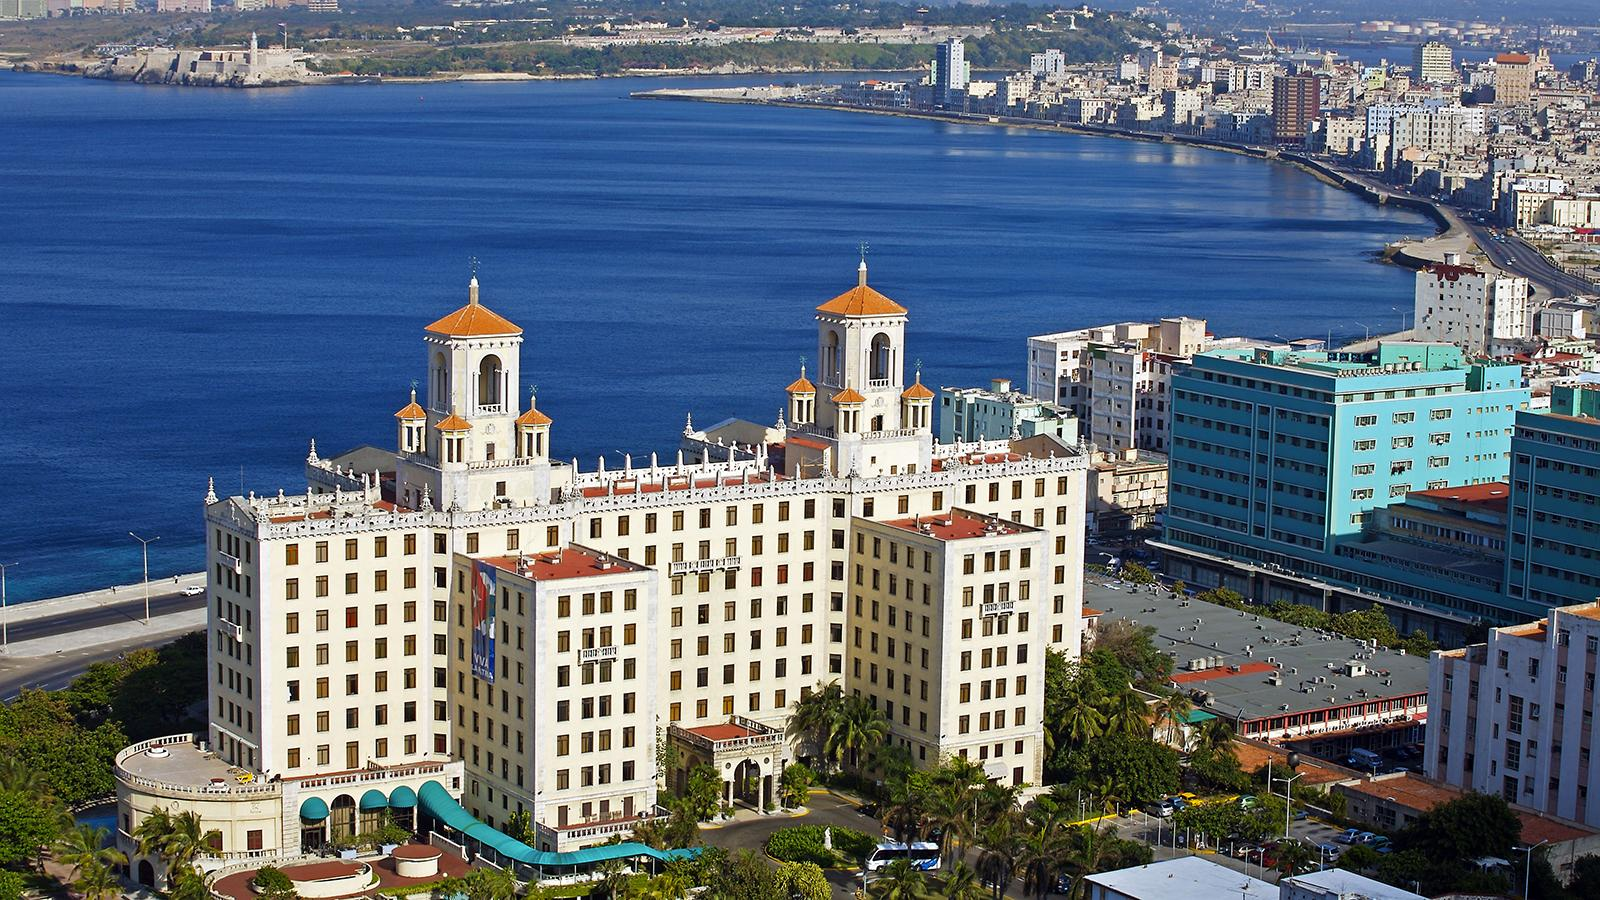 Americans Are Flocking To Cuba, But Is The Island Ready?